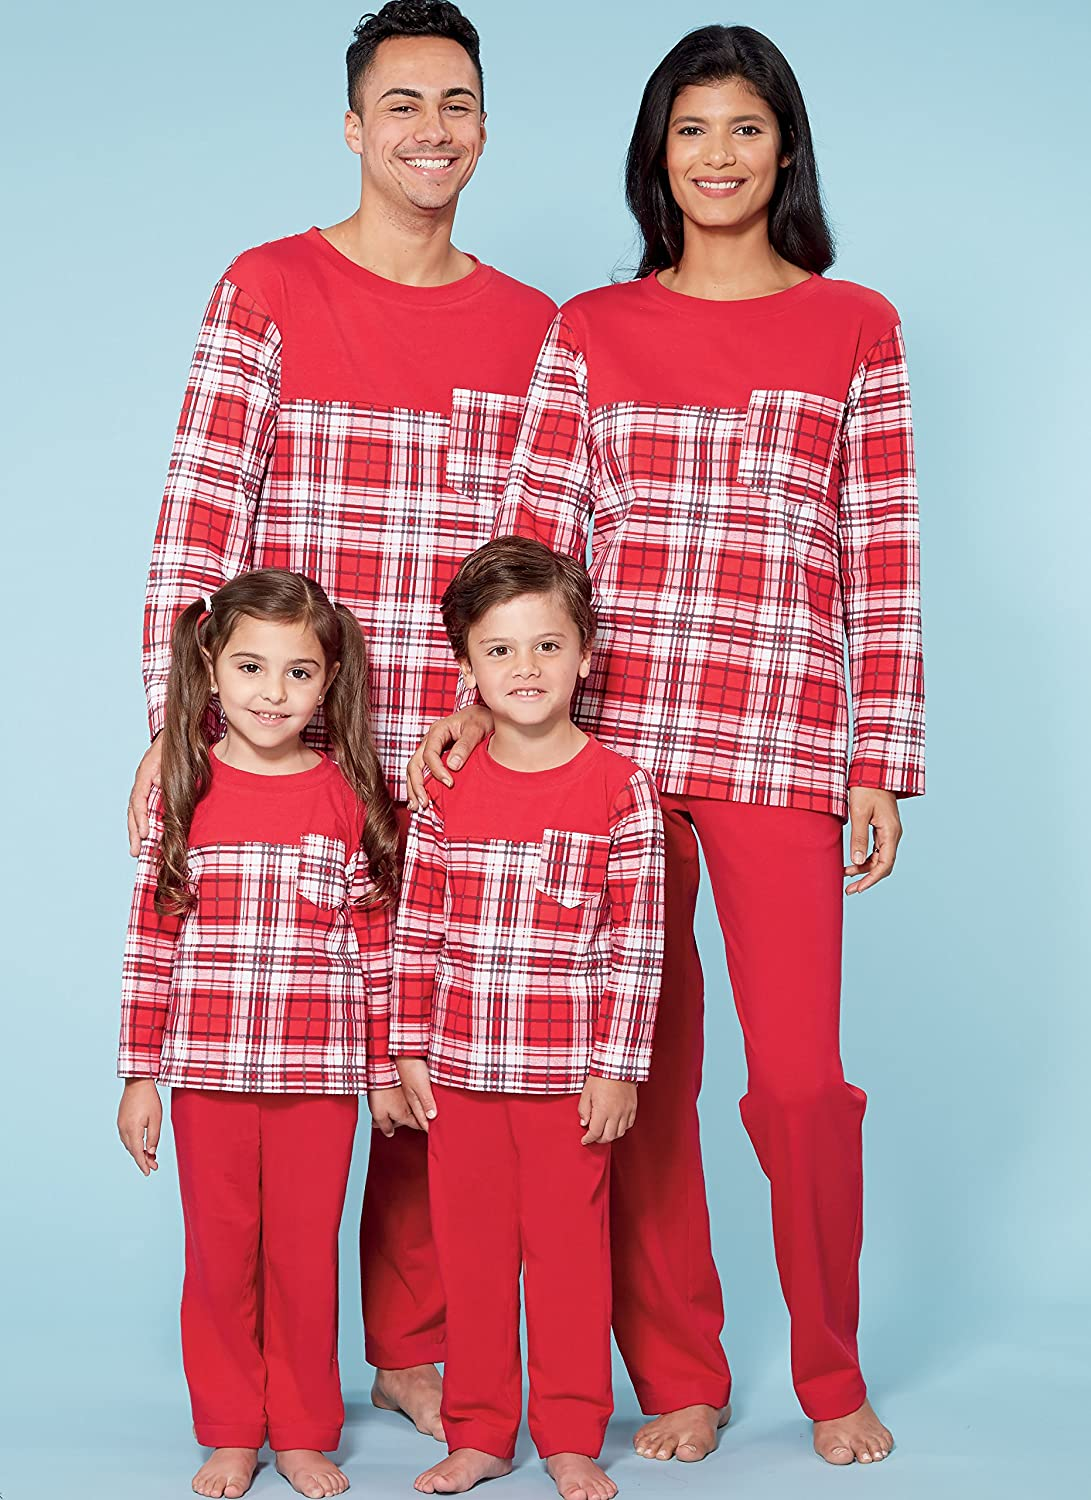 Amazon.com: MCCALLS M7700 Boys/Girls/Childrens Top and Pants PJS PAJAMA (LEARN TO SEW): Arts, Crafts & Sewing